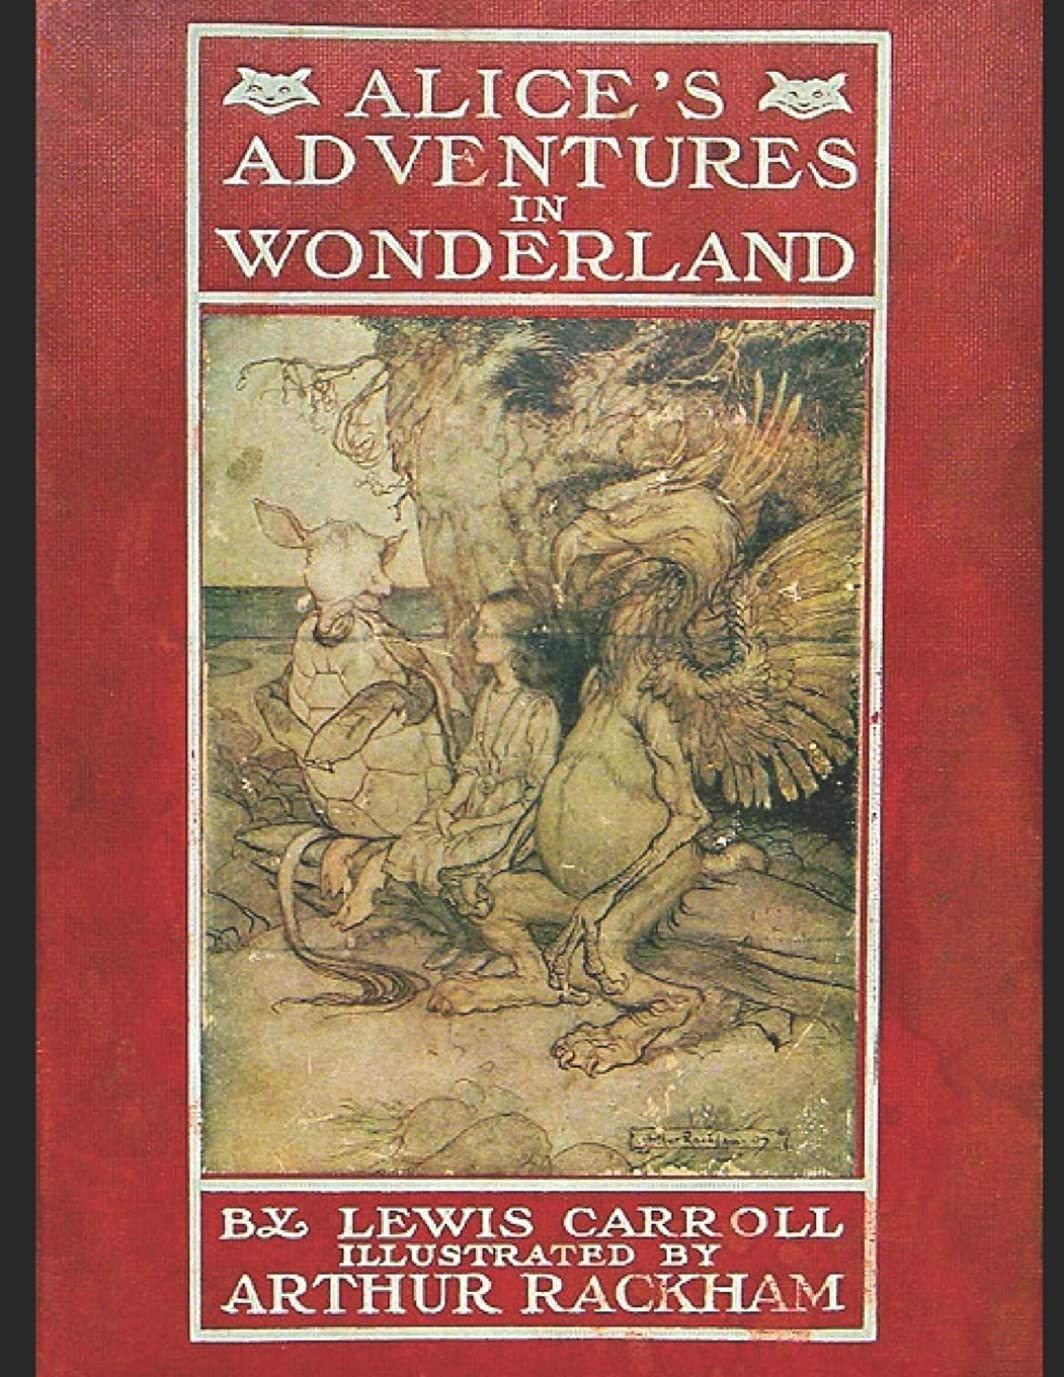 ミサイル思春期の生Alice's Adventure In Wonderland: A Fantastic Story of Action & Adventure (Annotated) By Lewis Carroll.